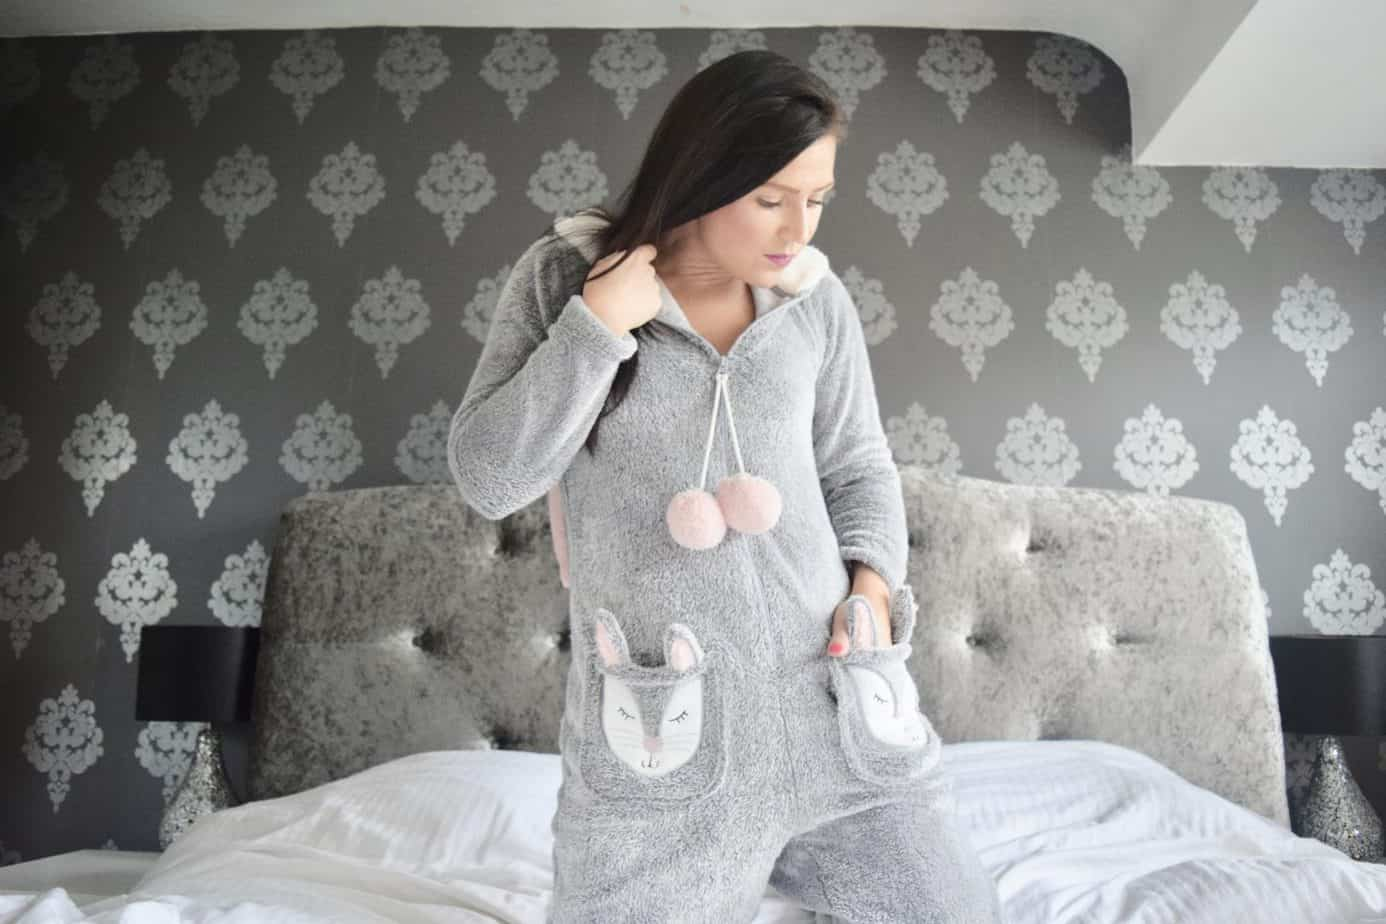 I am kneeling on the bed with my hand on one of the rabbit pockets - onesie made by Hunkemoller